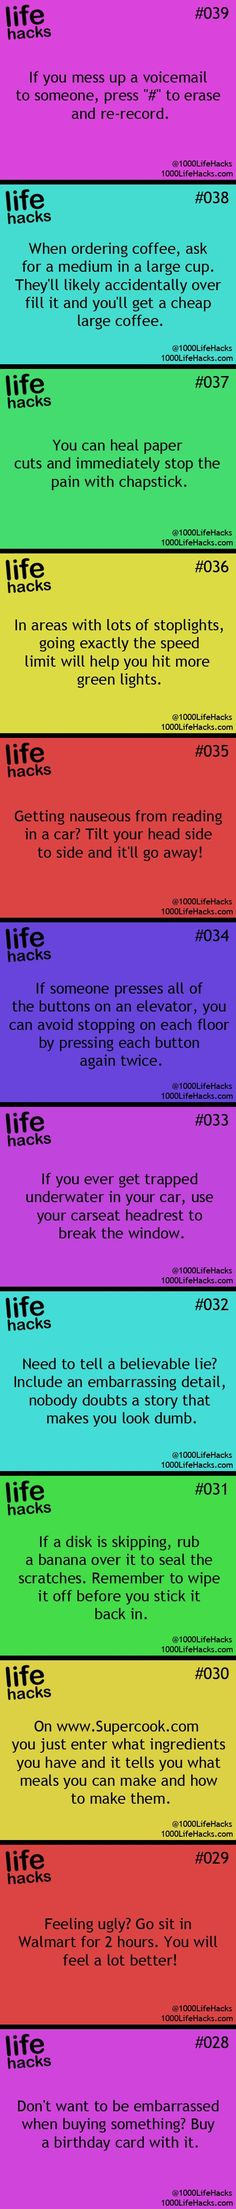 25 Useful Life Hacks.